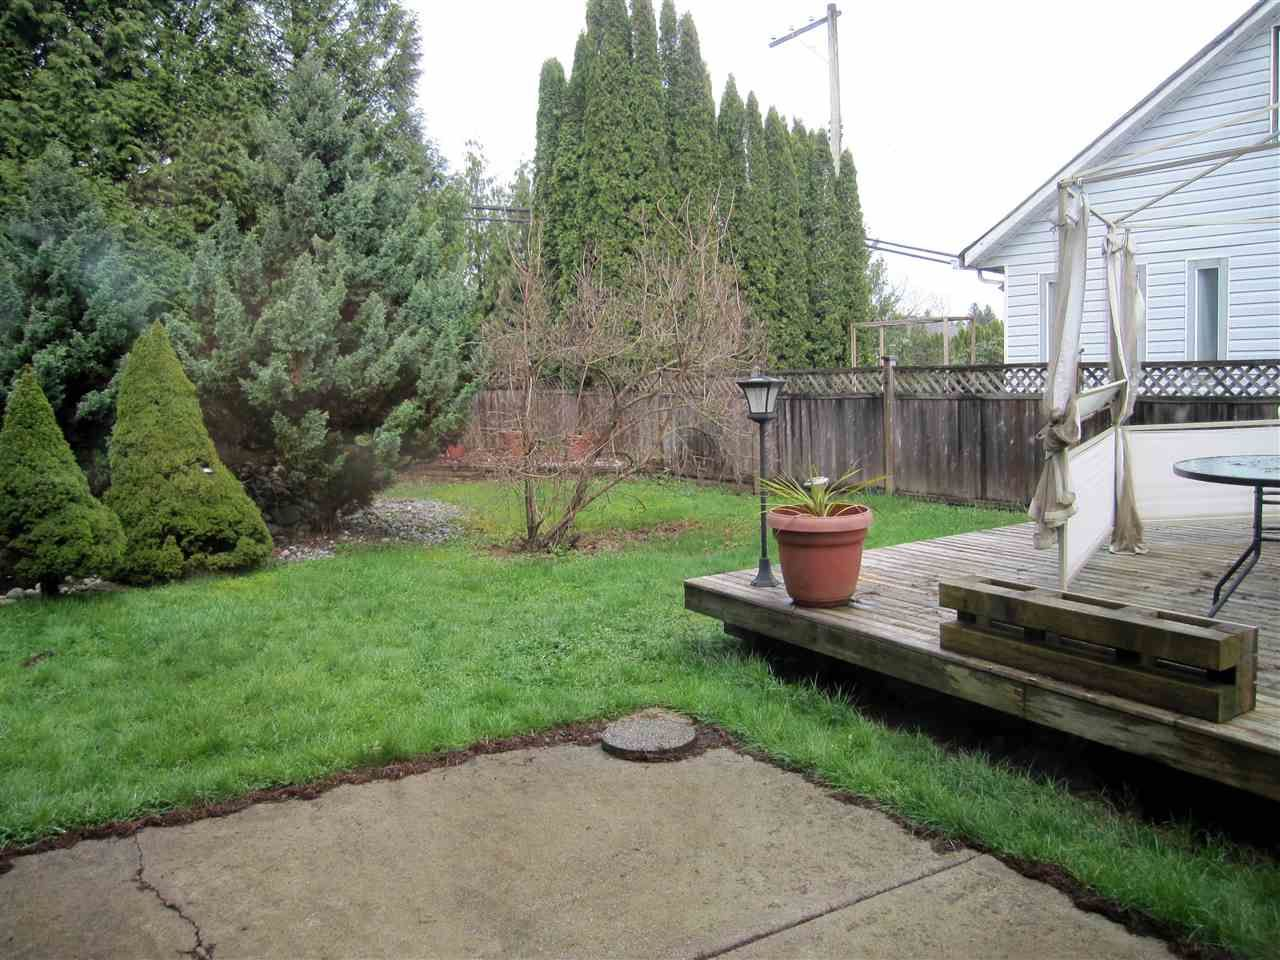 Photo 11: Photos: 23209 123 Avenue in Maple Ridge: East Central House for sale : MLS®# R2049127